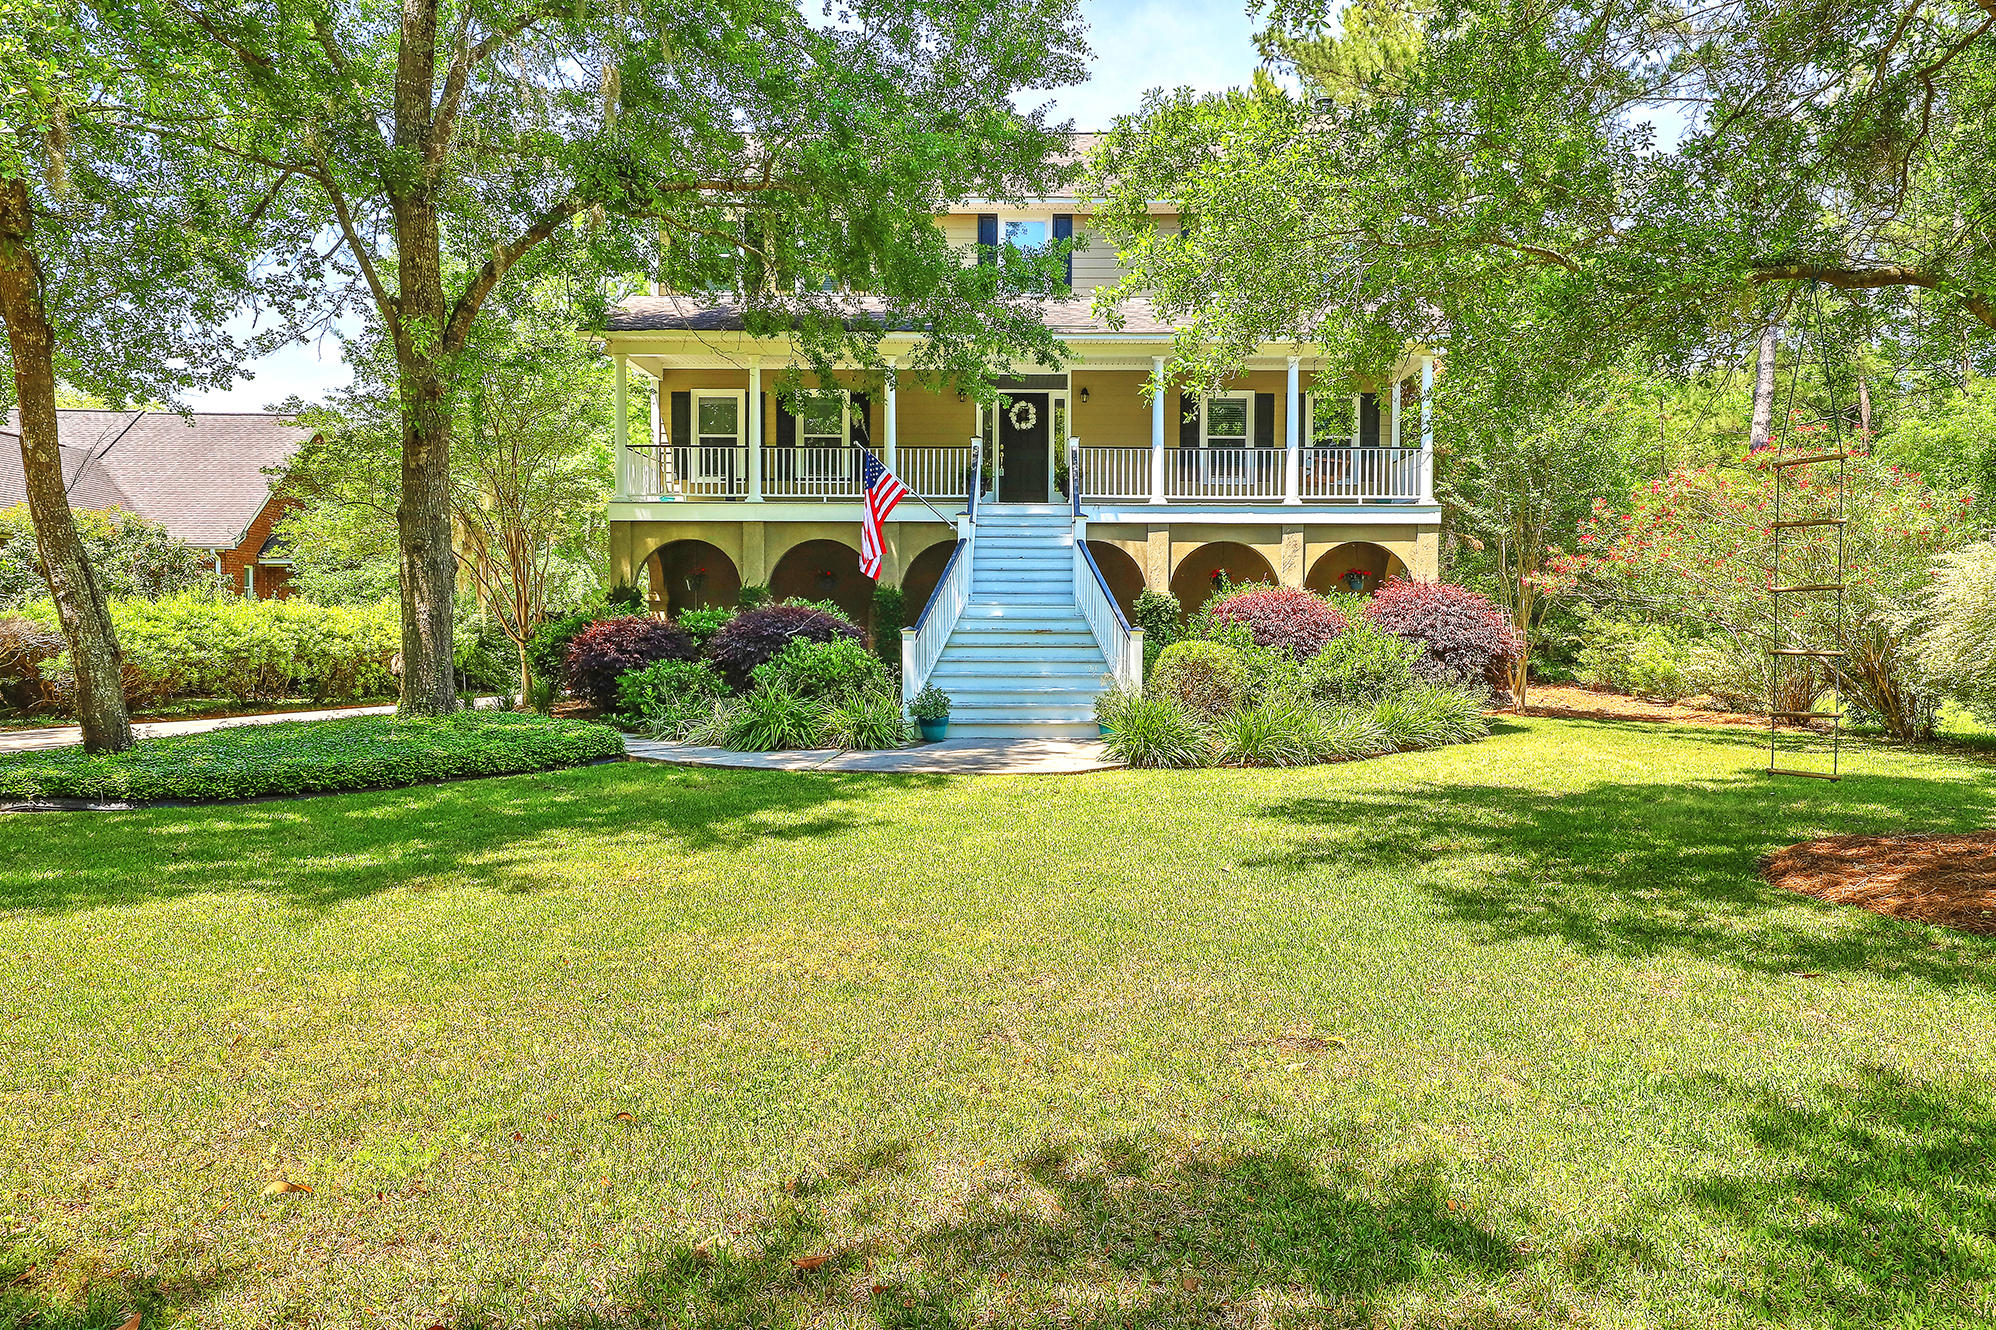 Stono Ferry Homes For Sale - 5104 St Ann, Hollywood, SC - 52